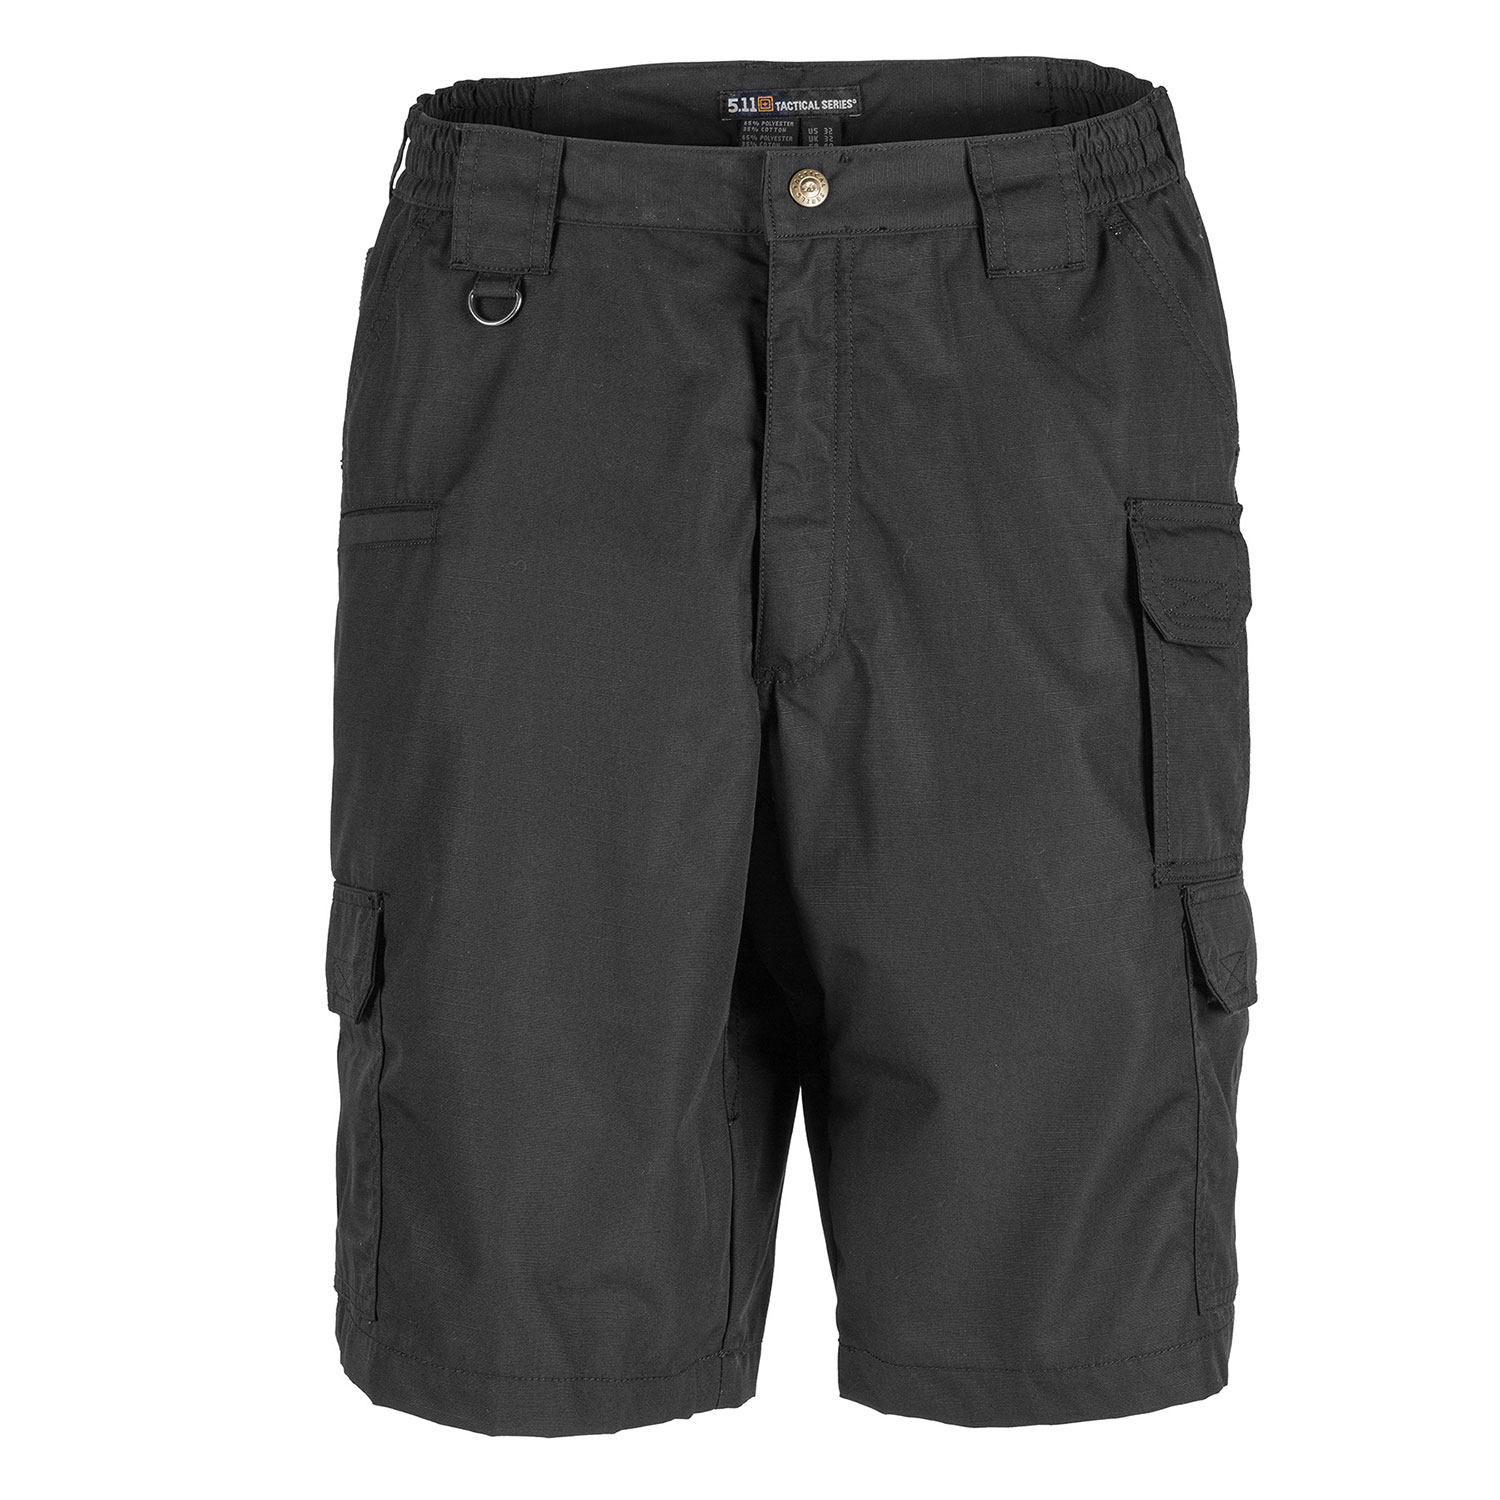 "5.11 Tactical Taclite 11"" Pro Shorts"